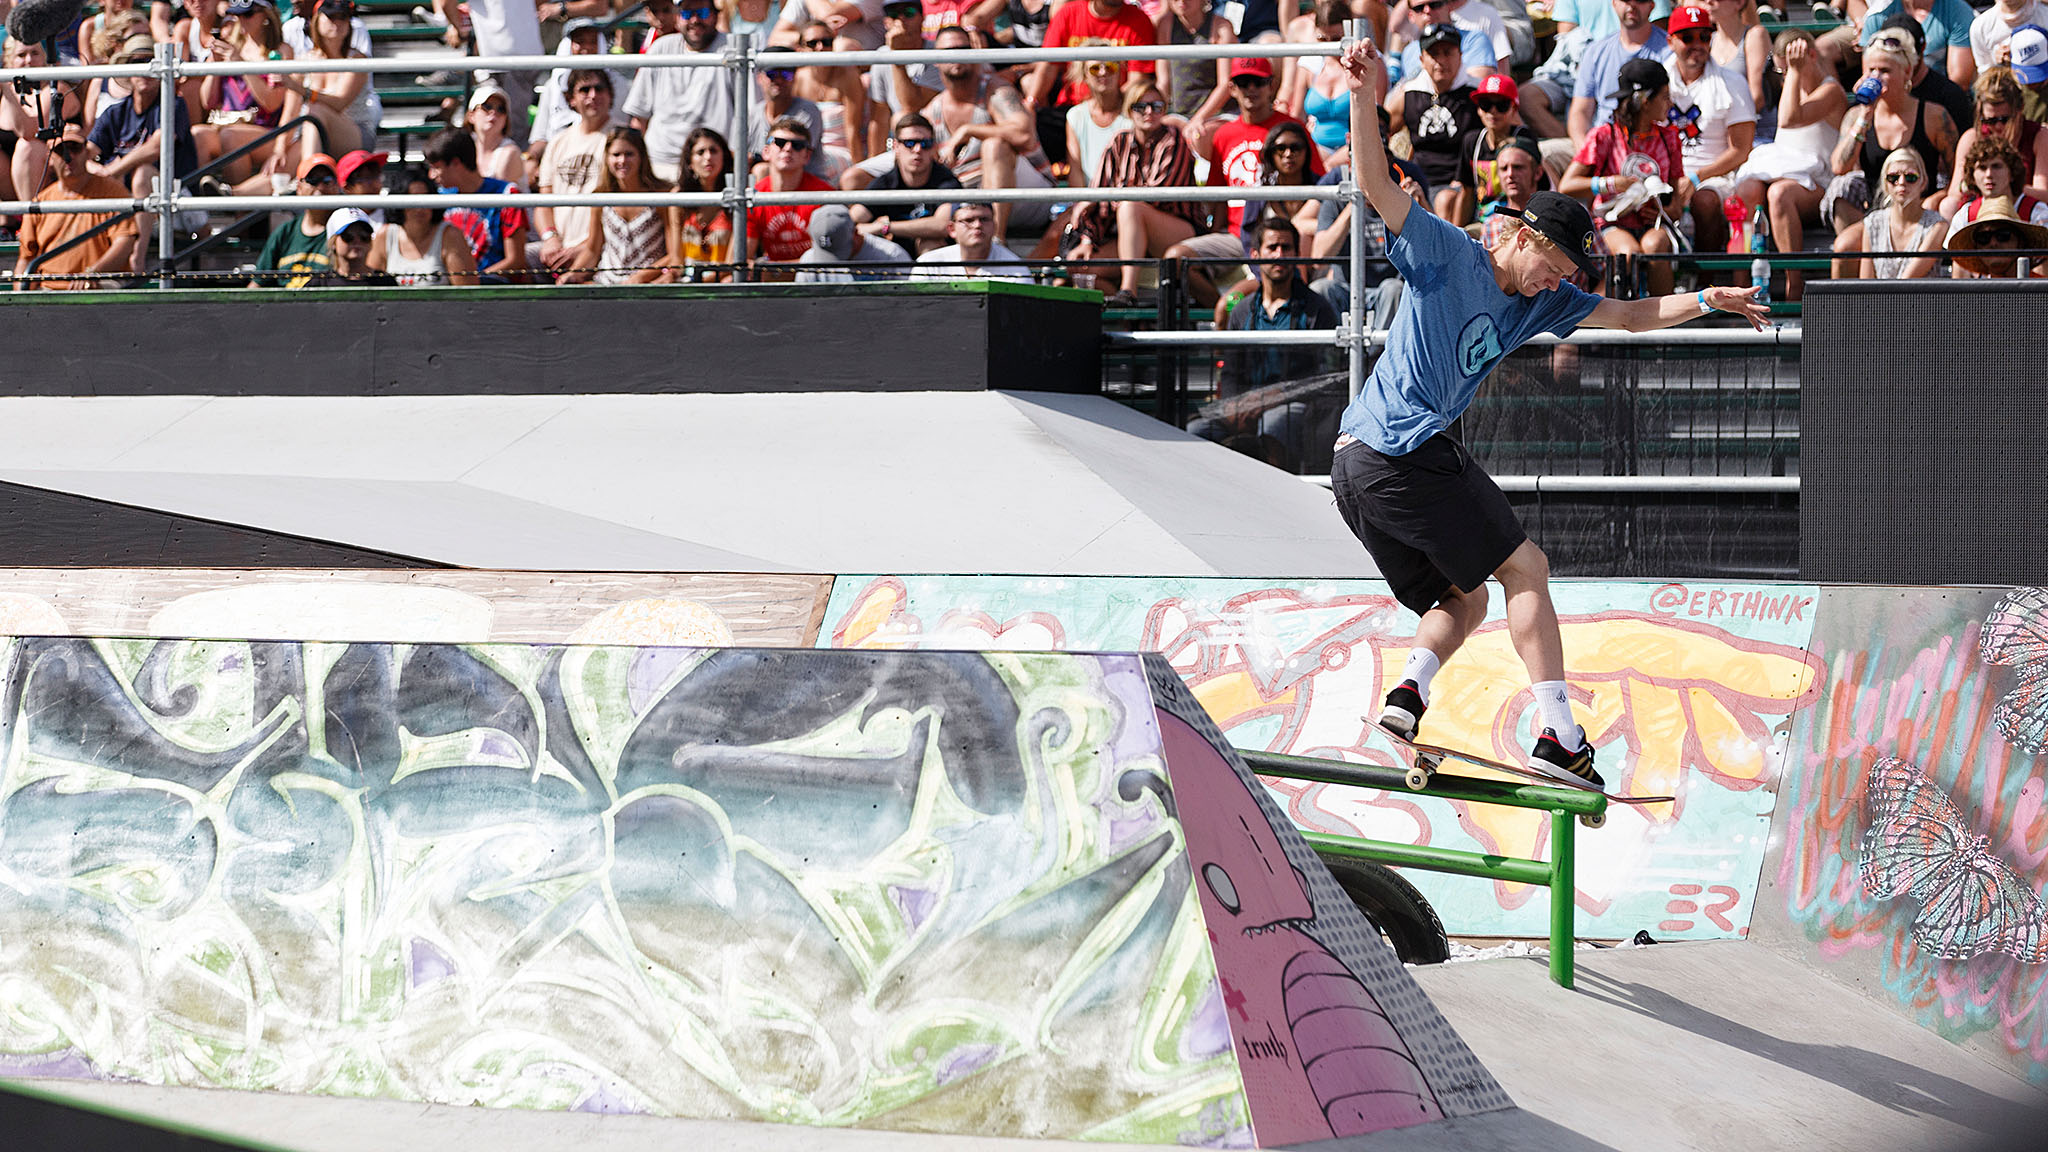 At 18, rookie Alec Majerus, from Rochester, Minnesota, was the youngest skateboarder in the X Games Austin Monster Energy Skateboard Street field. After an impressive placing at Tampa Pro earlier this year, Majerus earned an invite to Austin and coasted through Round 1 to finish third in the Skateboard Street finals.